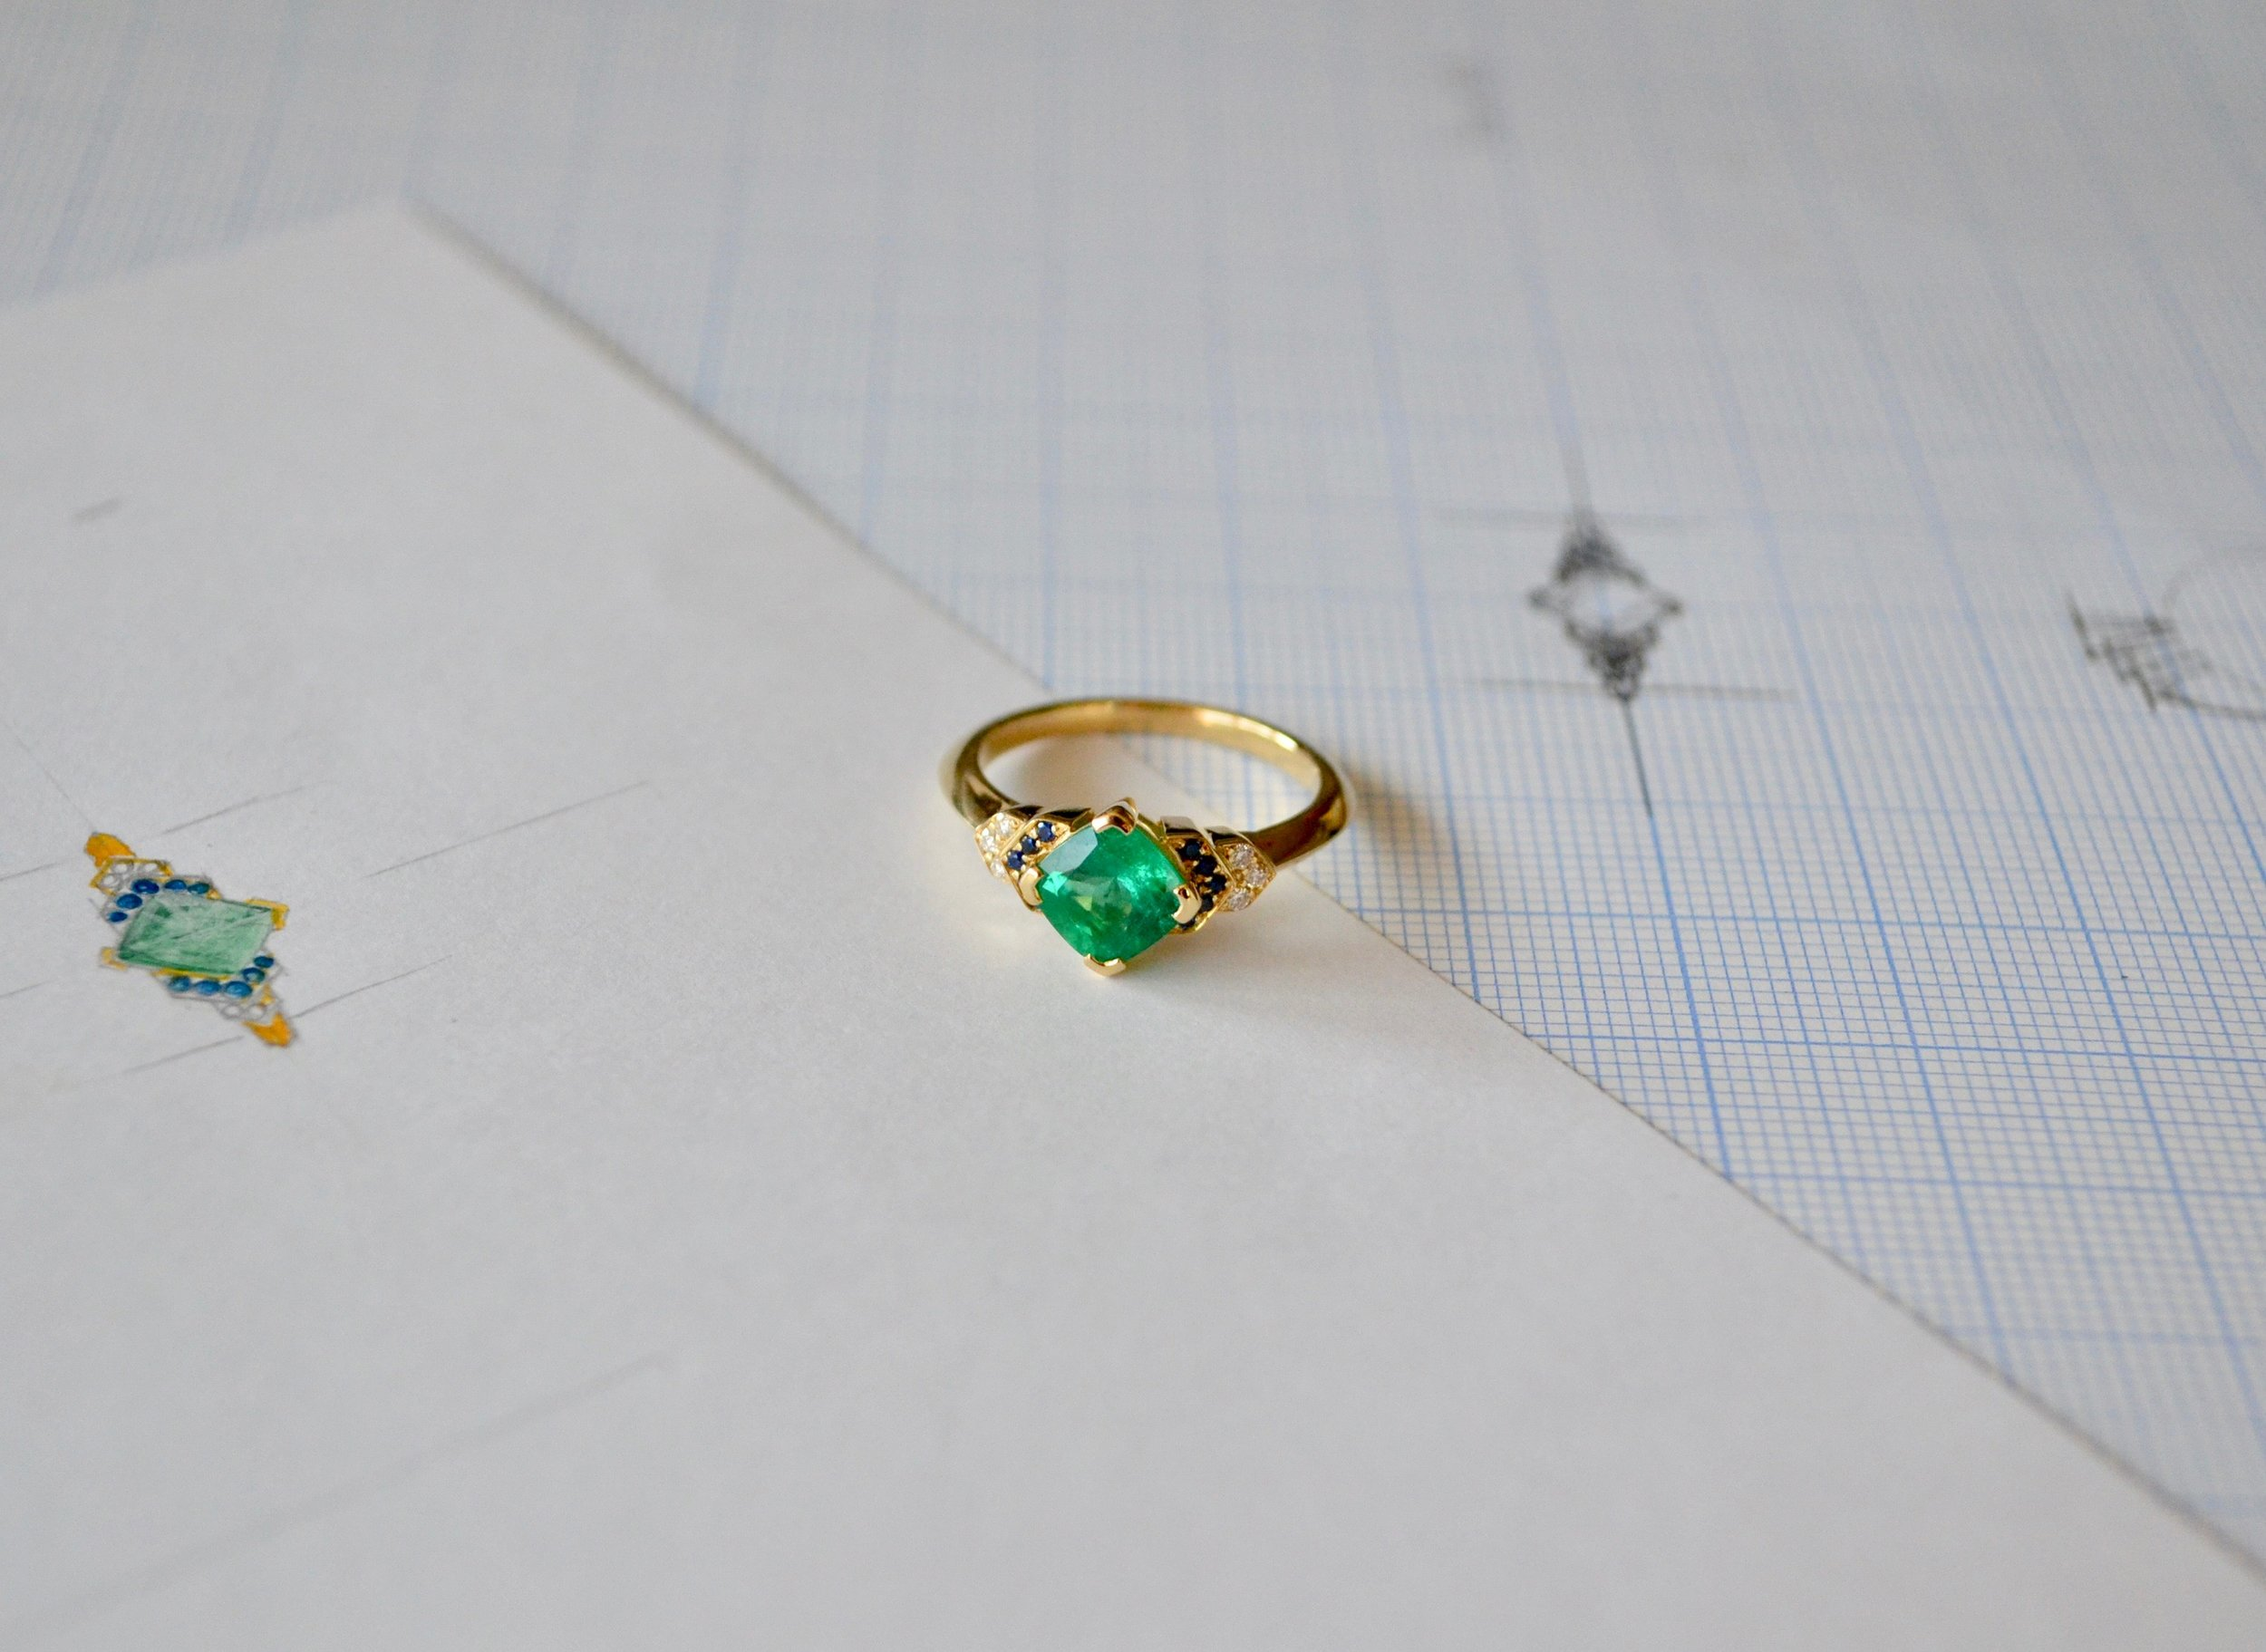 Spanner & Wingnut bespoke engagement ring || Cushion Cut emerald with sapphires & diamonds